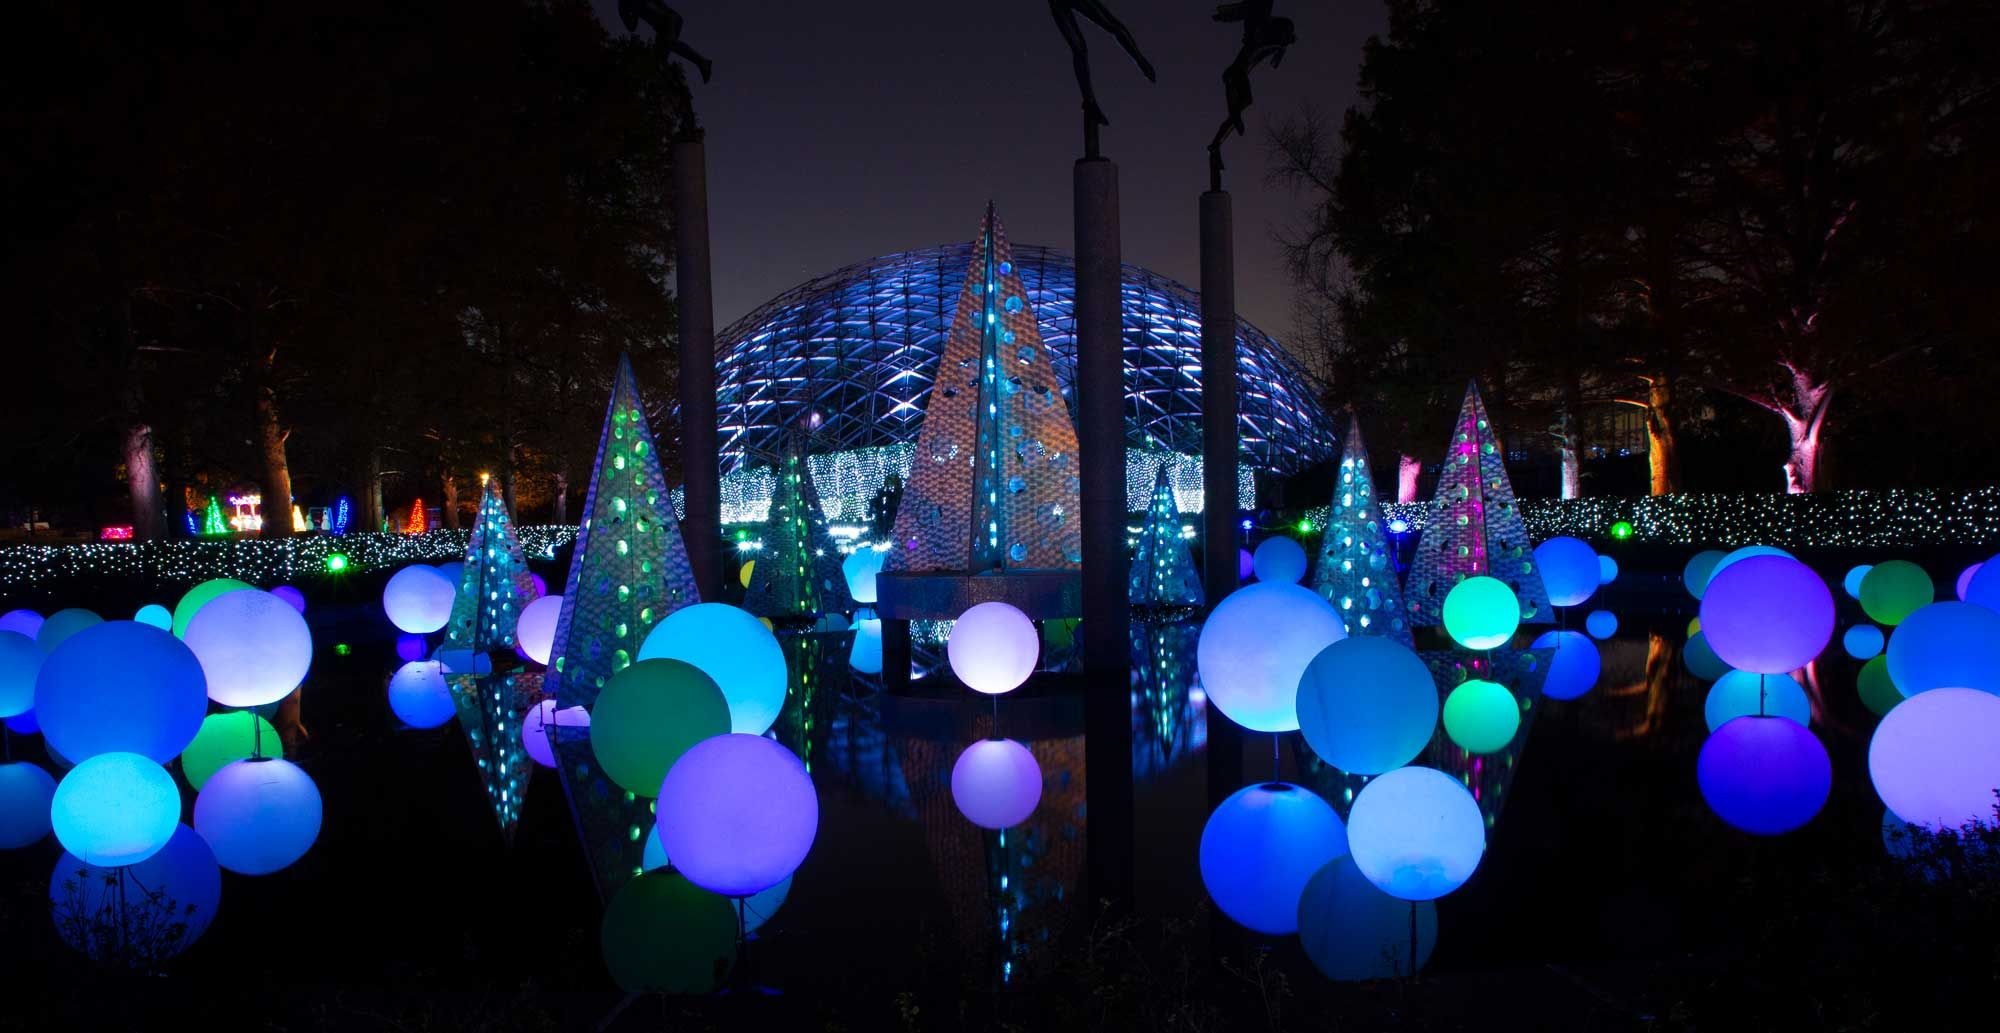 Celebrate the season with over one million dazzling lights